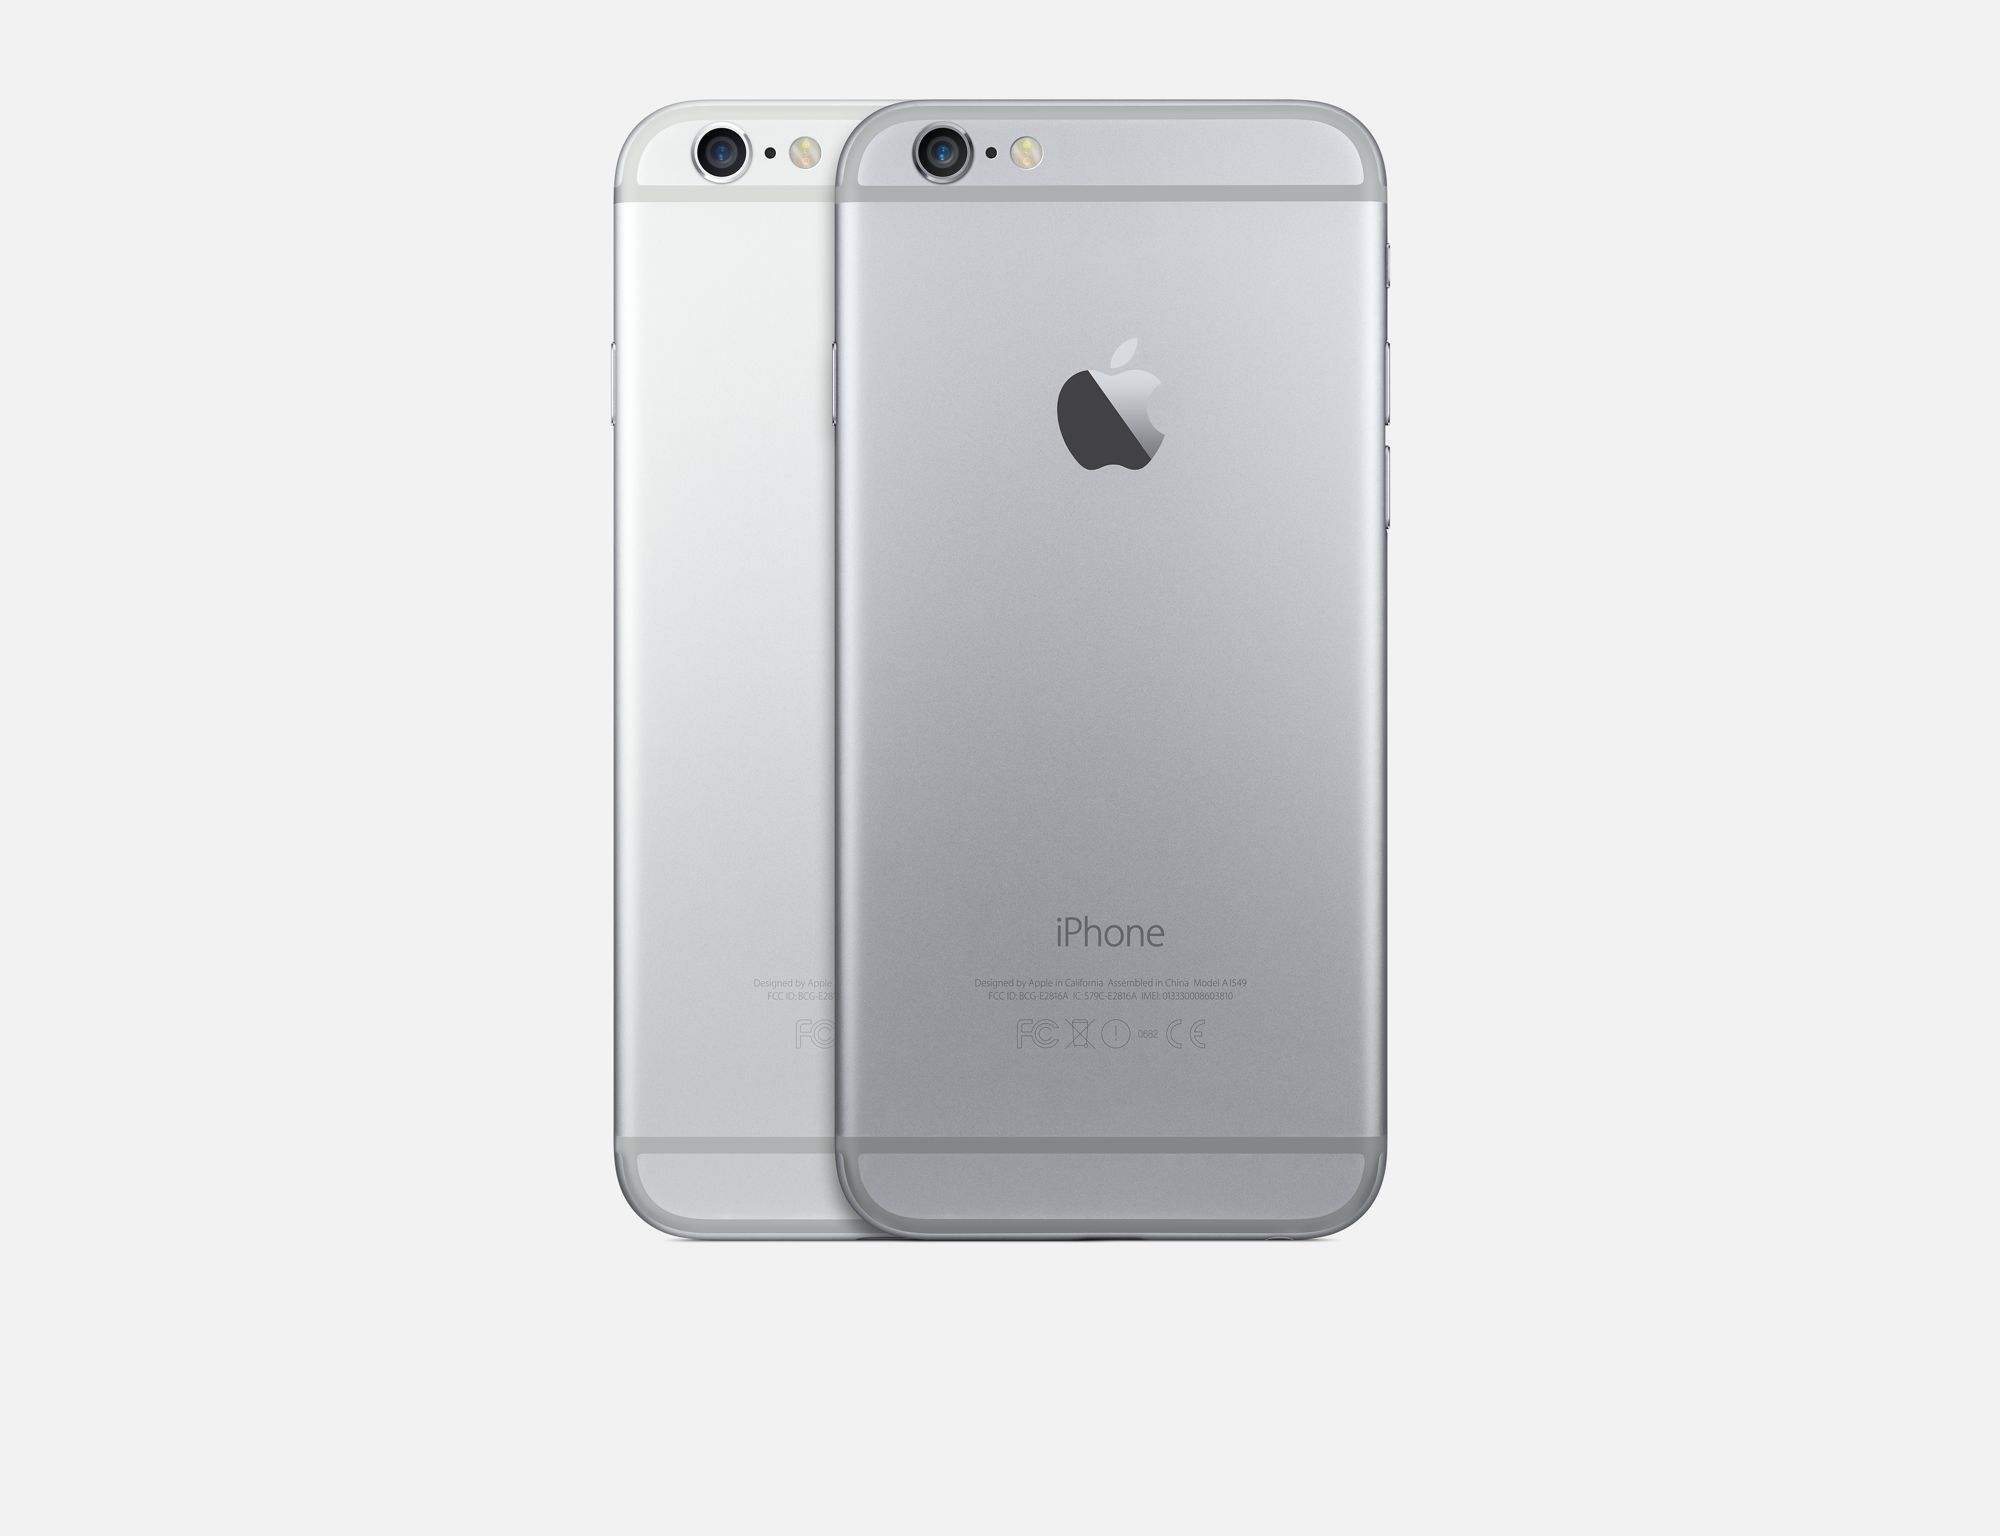 iphone-6-que-sorteo